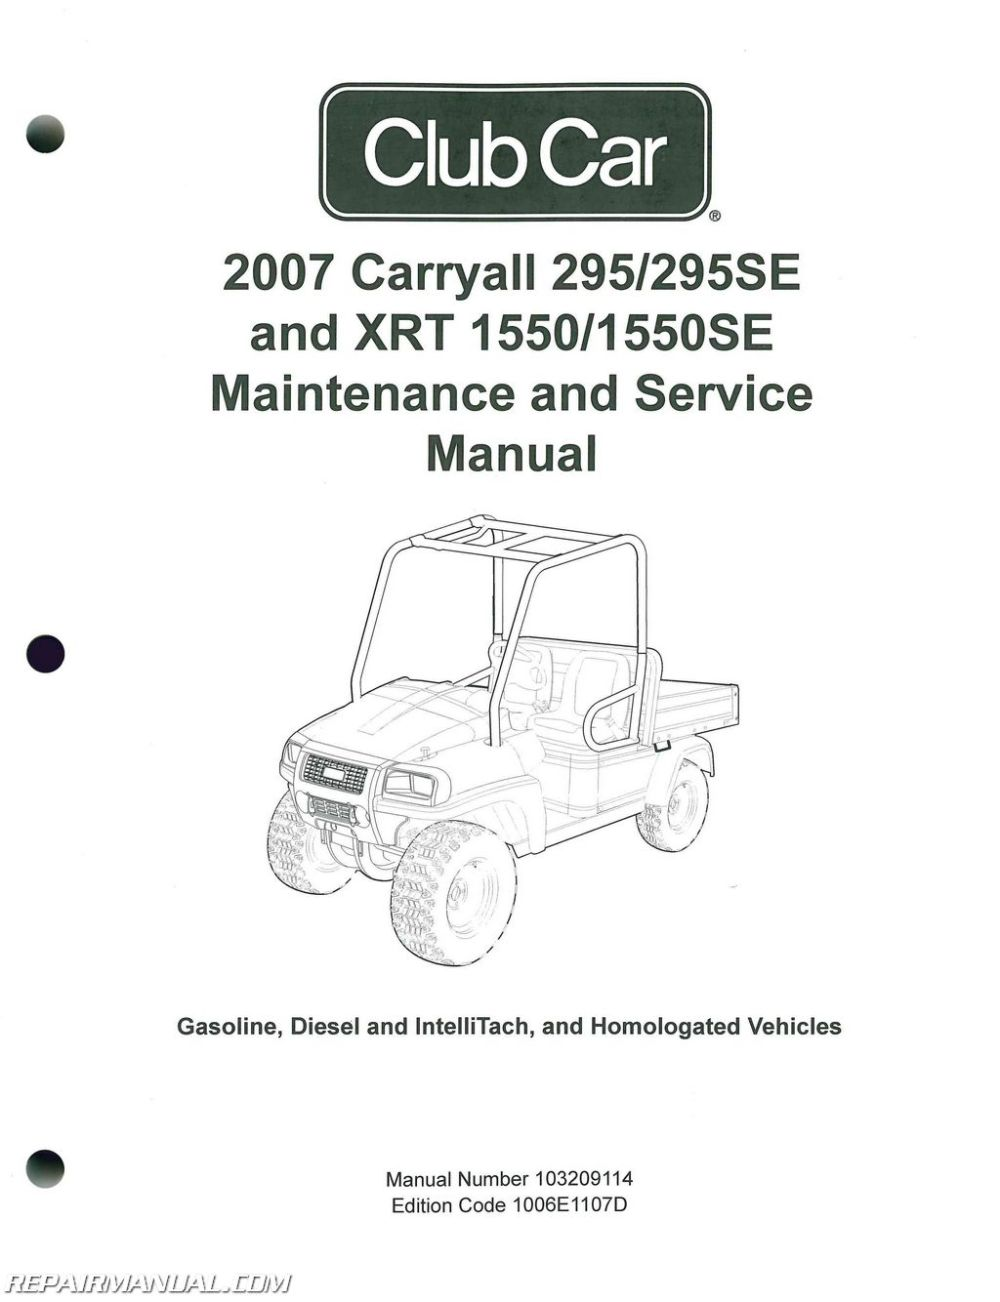 medium resolution of 2007 club car carryall service manual 295 295se u2013 xrt 15502007 club car carryall